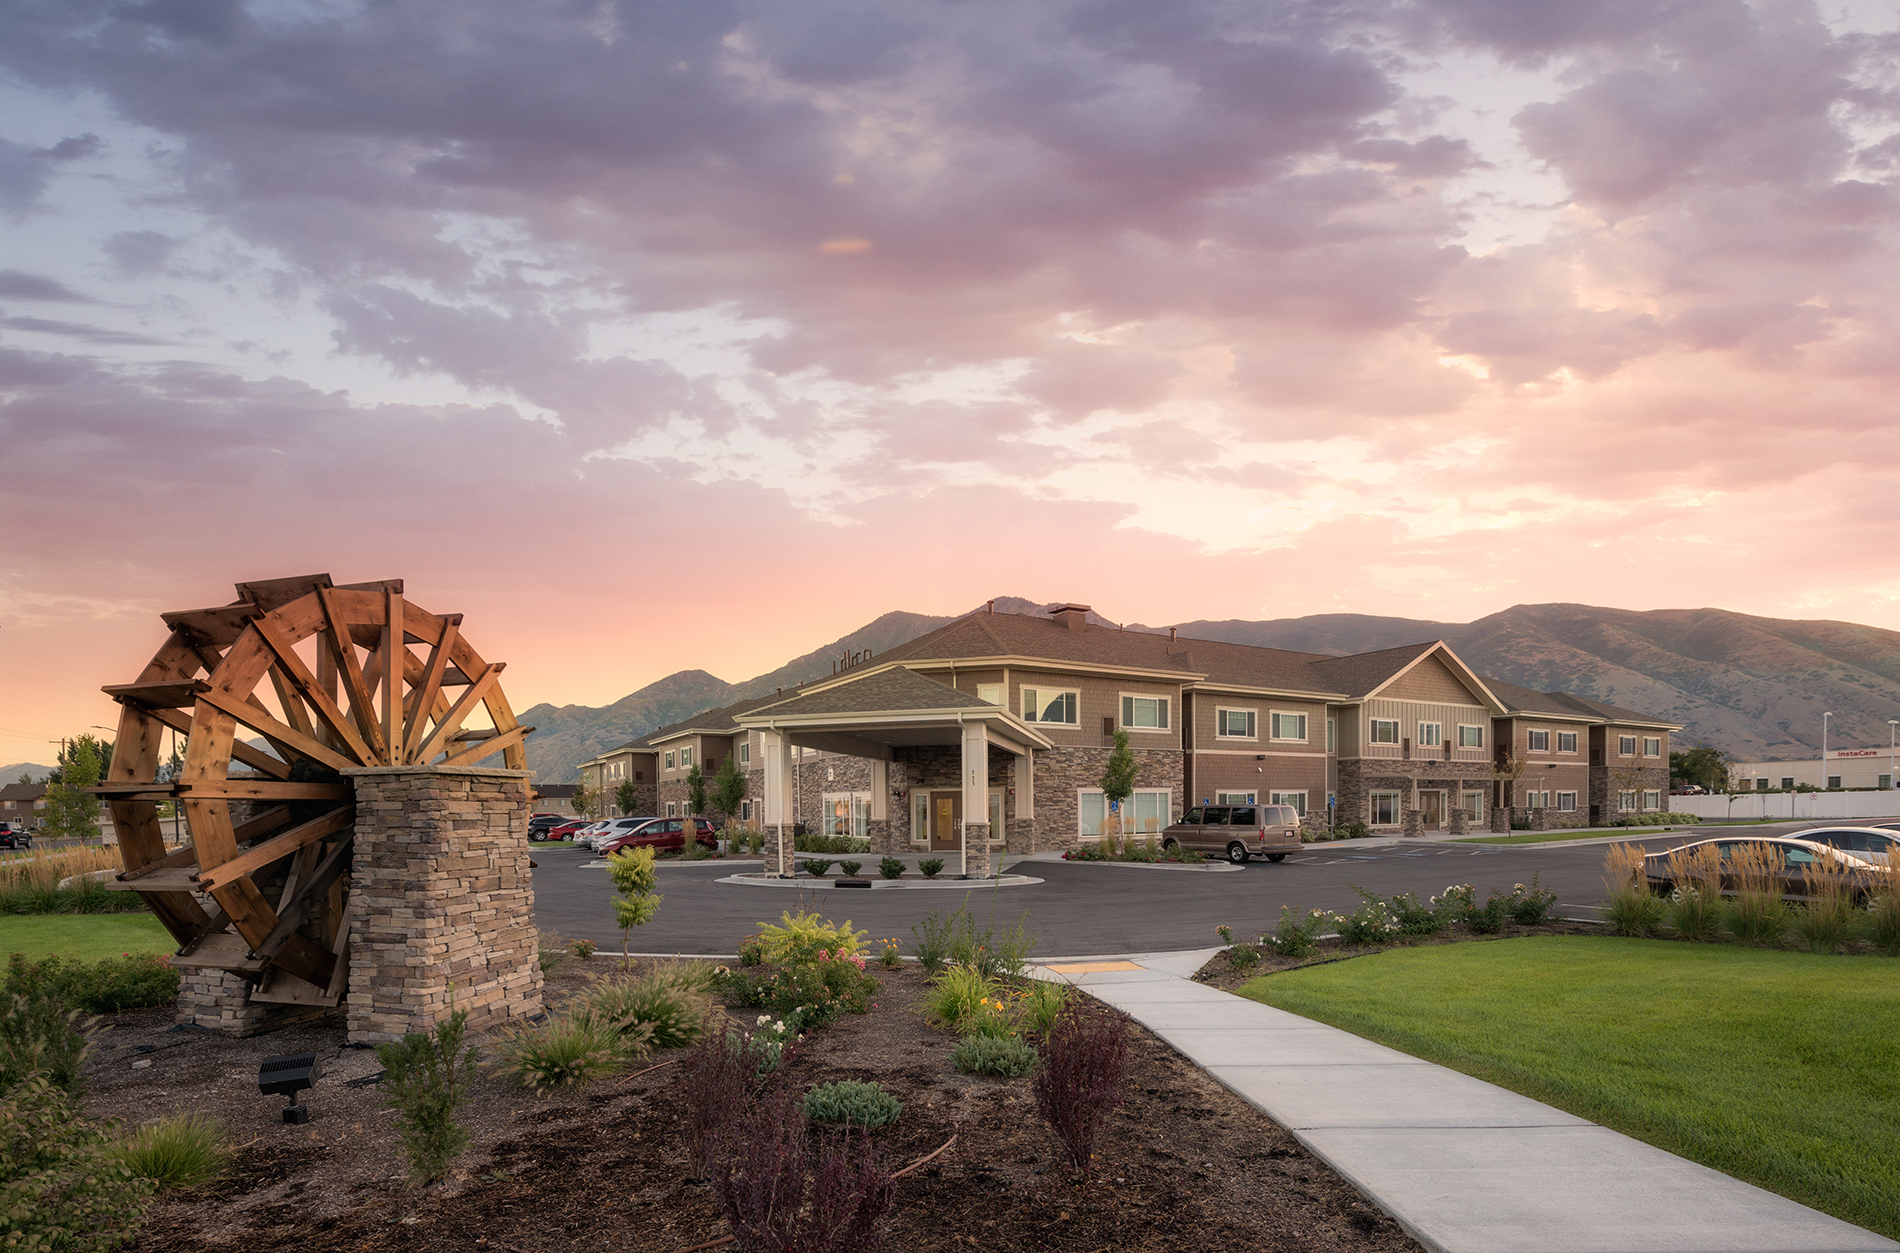 Ashford Assisted Living and Memory Care center